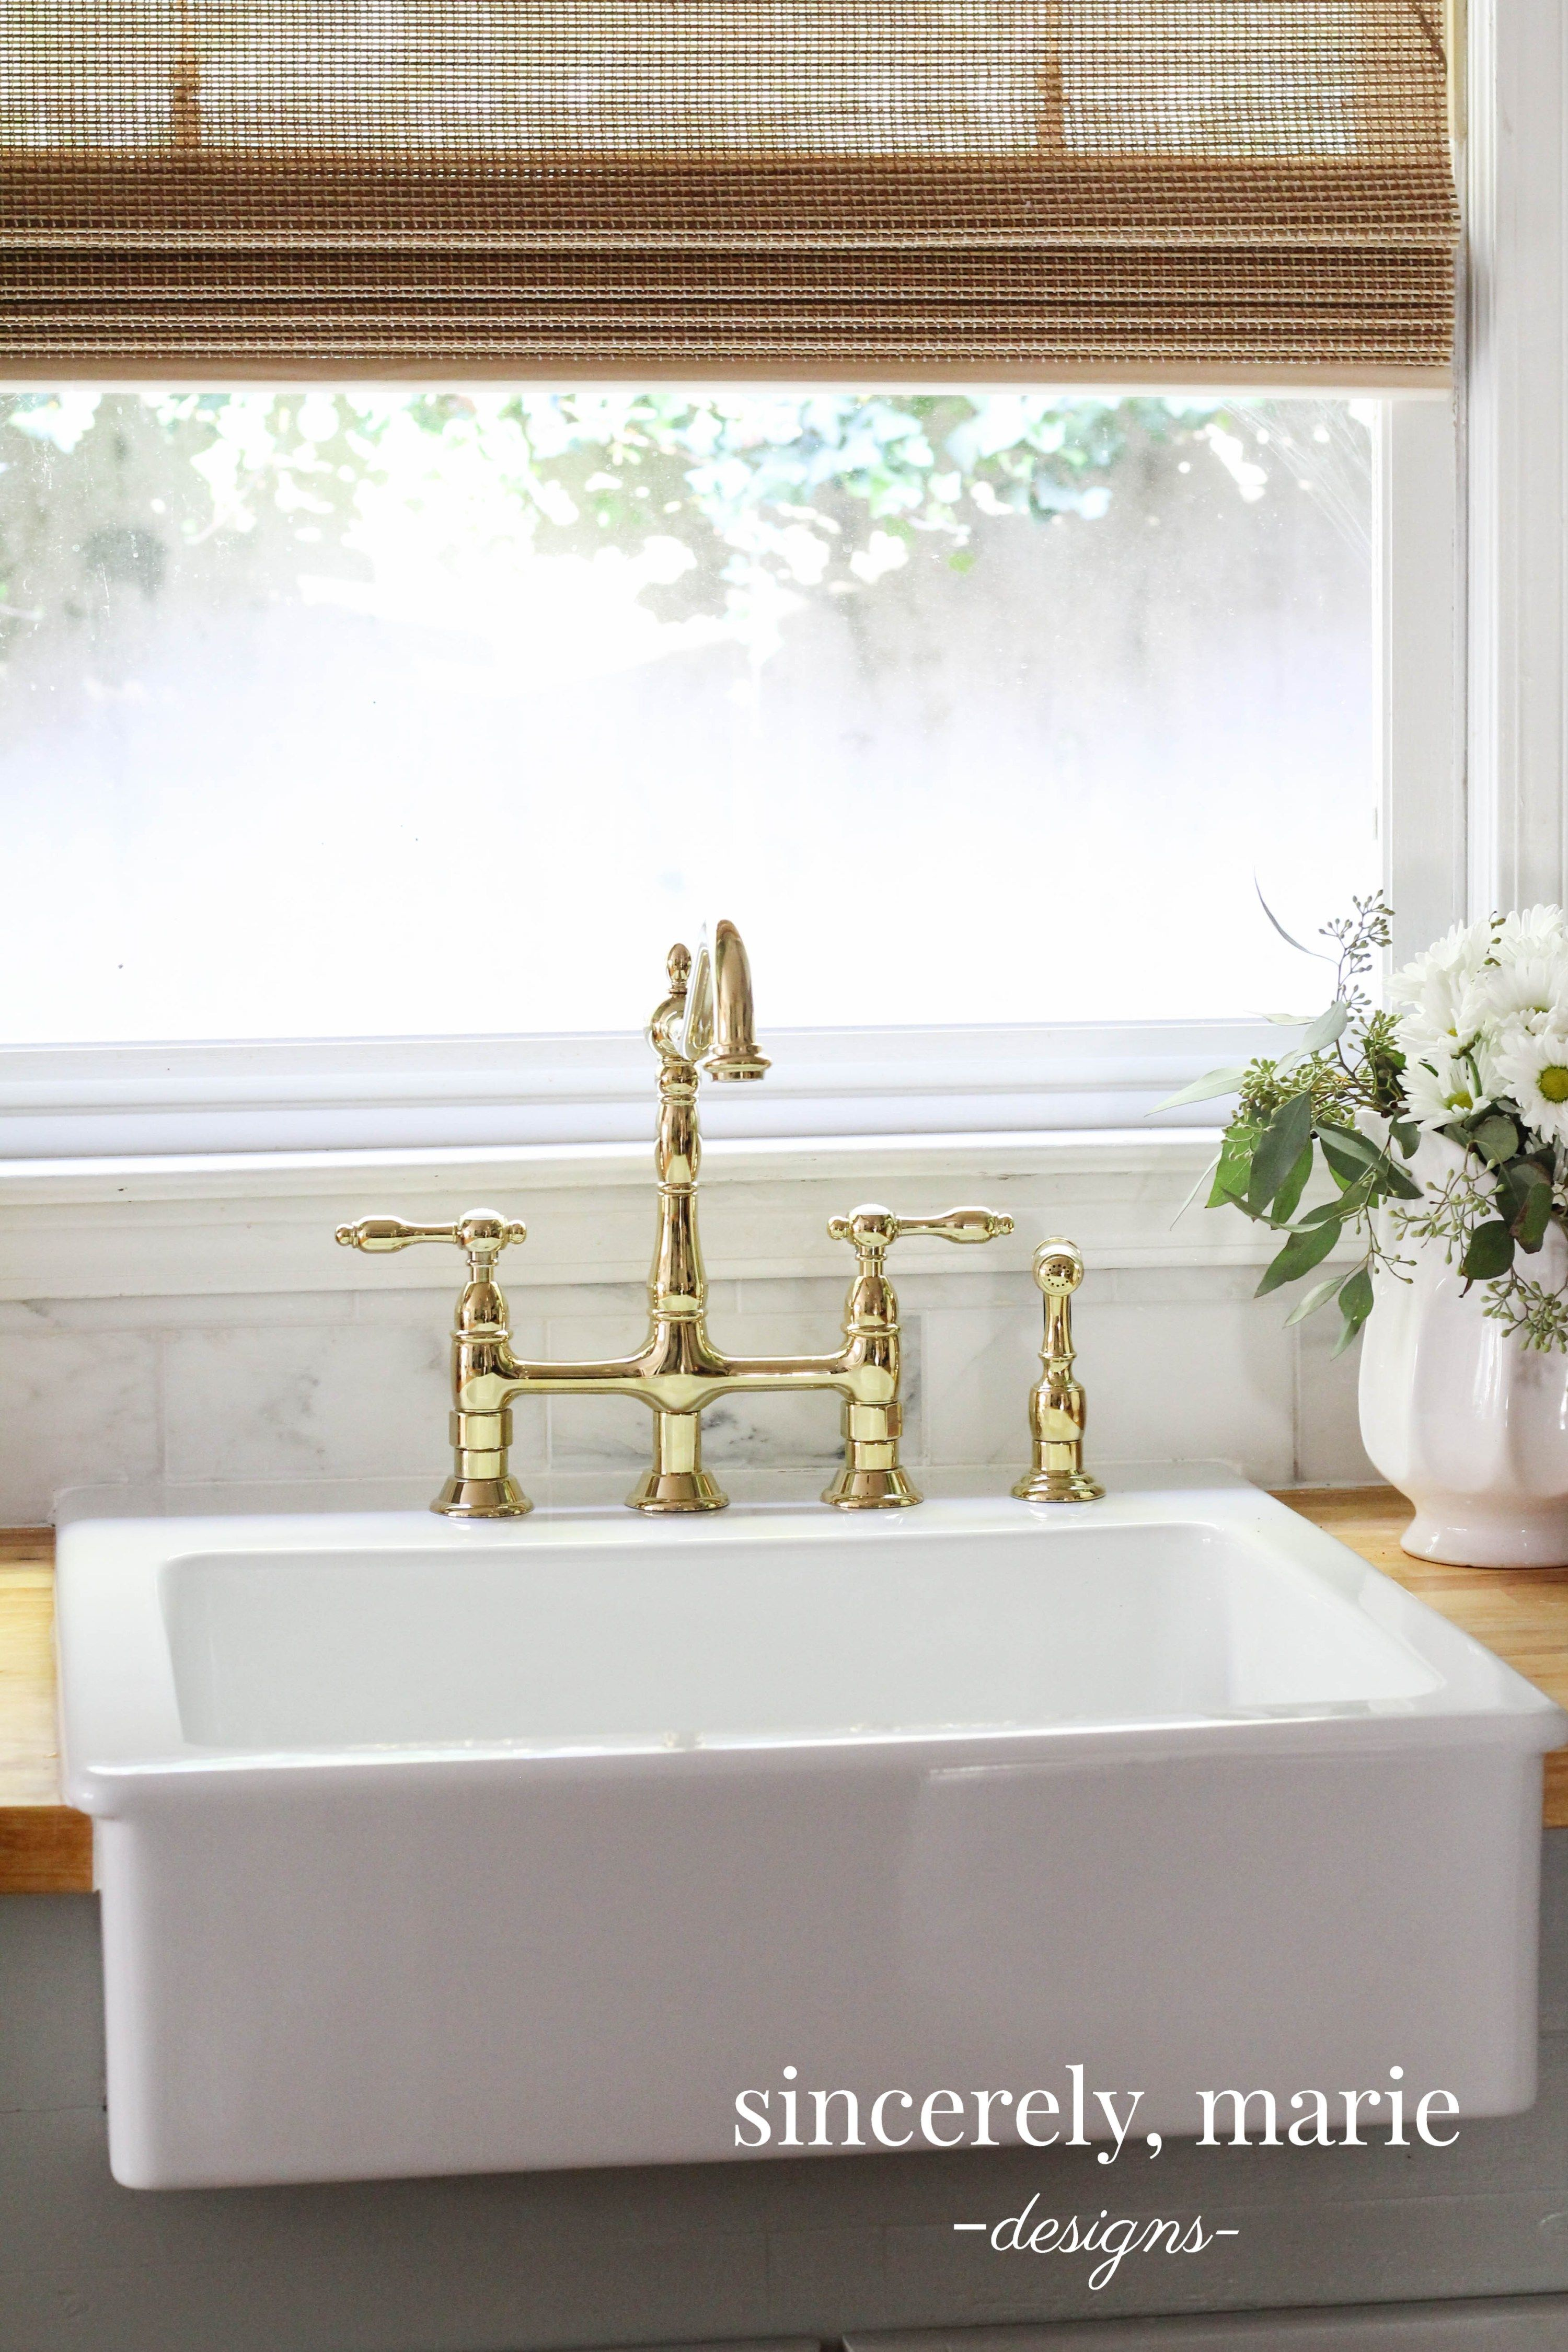 How-To Add Additional Holes to an Ikea Apron Sink   Apron sink ...